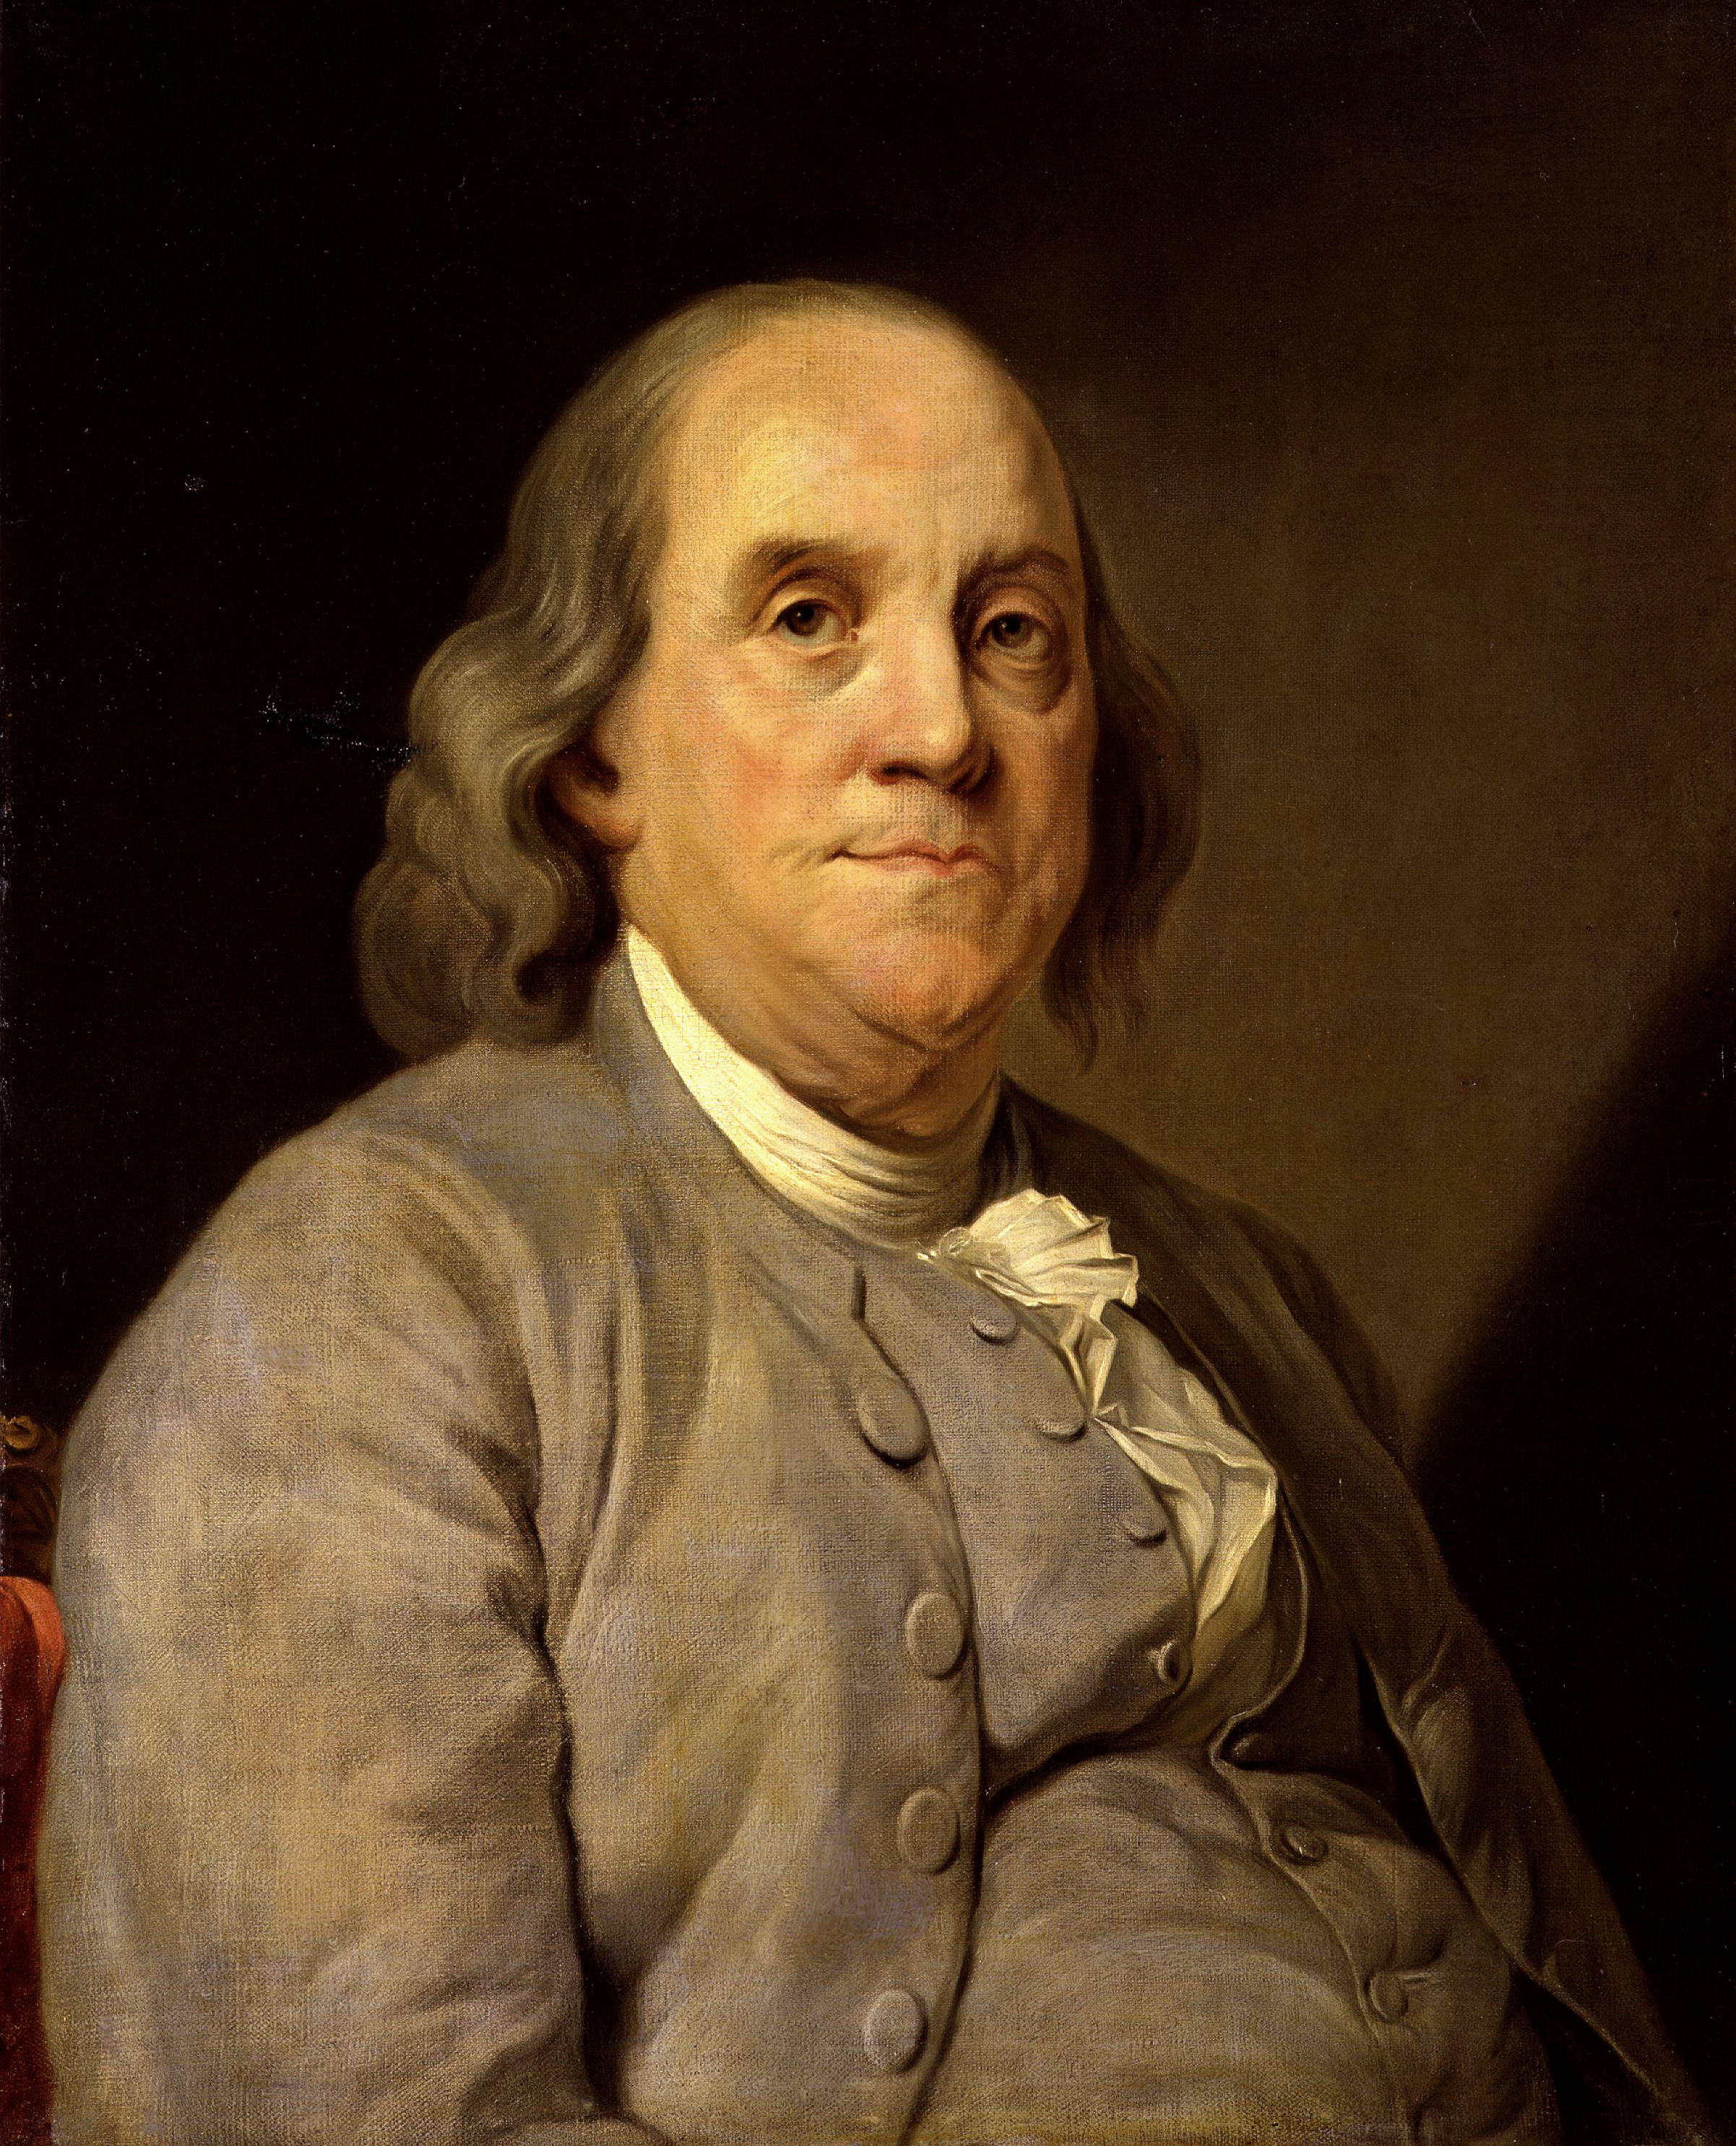 Benjamin Franklin image from Wikipedia.  This photographic reproduction is therefore also considered to be in the public domain